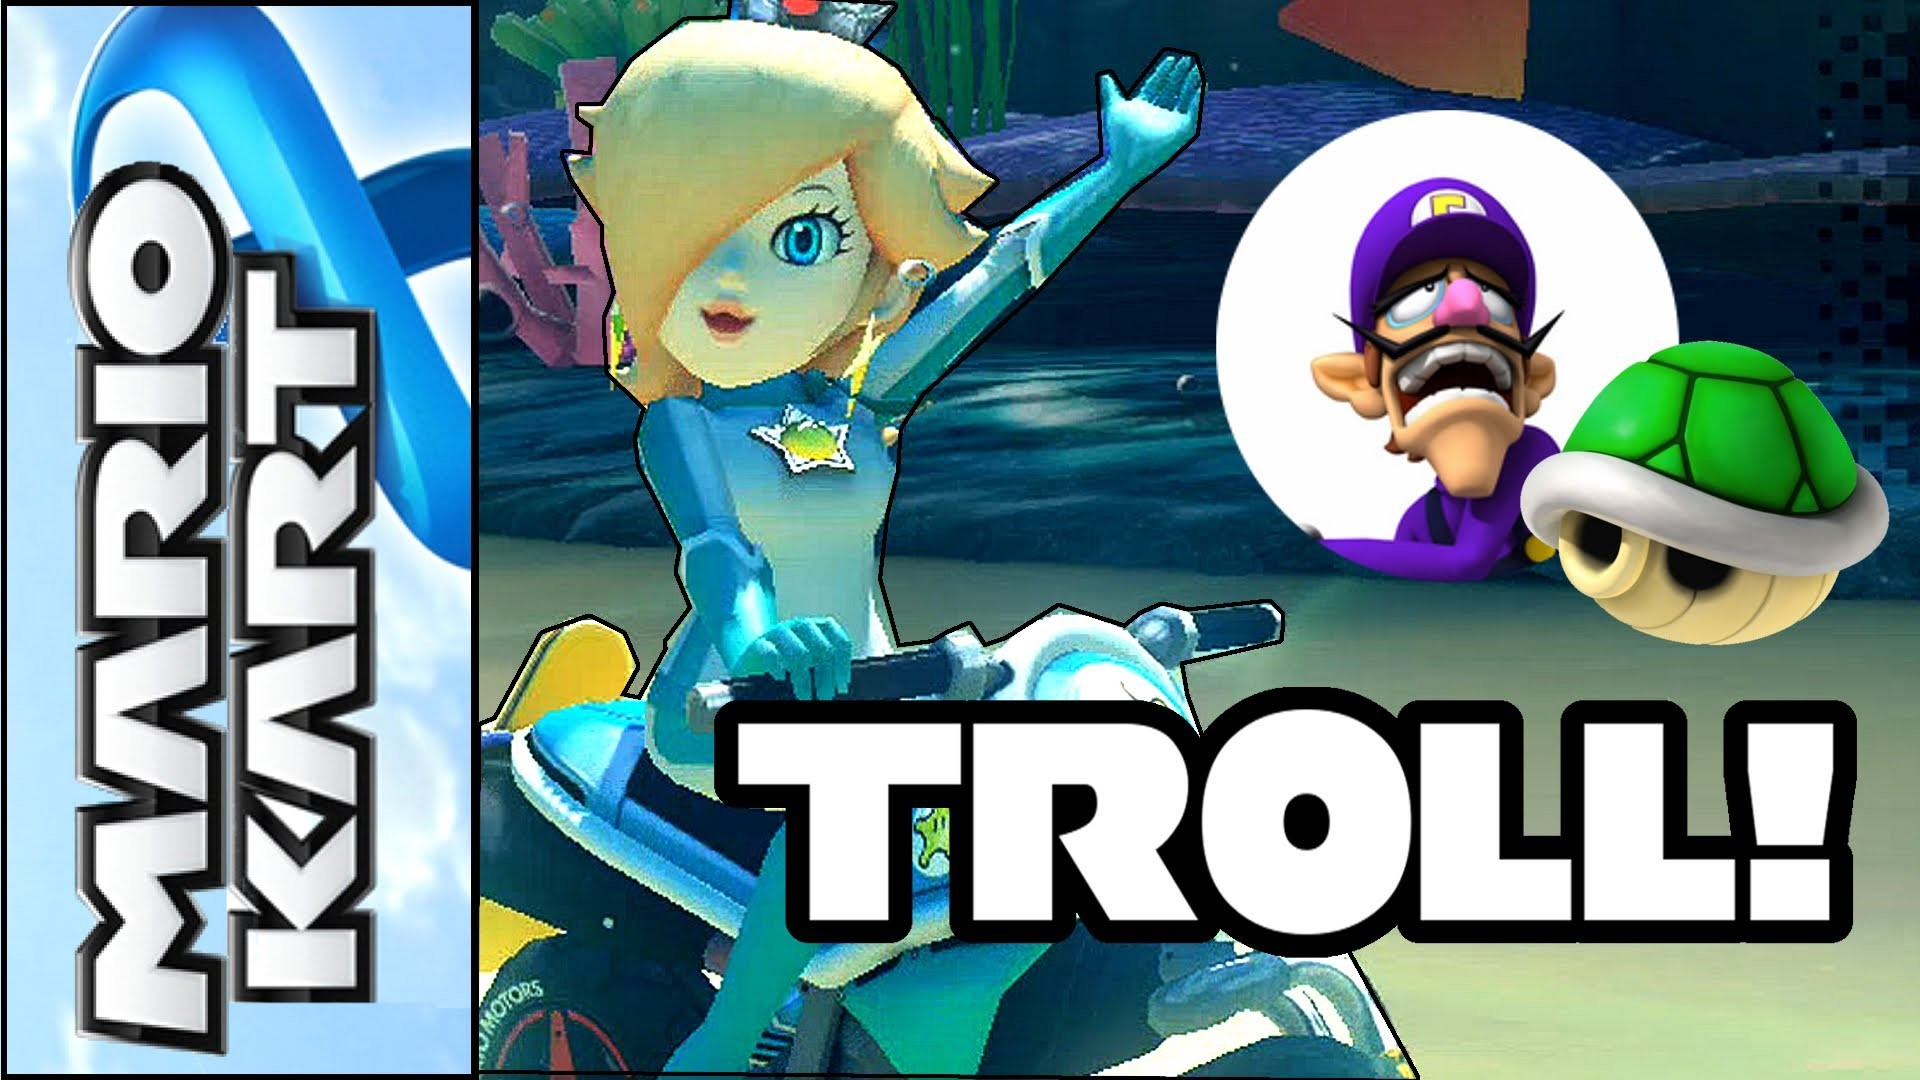 1920x1080 Mario Kart 8 - Rosalina trolls Waluigi at the Finish Line - Funny Moments  (Wii U Gameplay) - YouTube